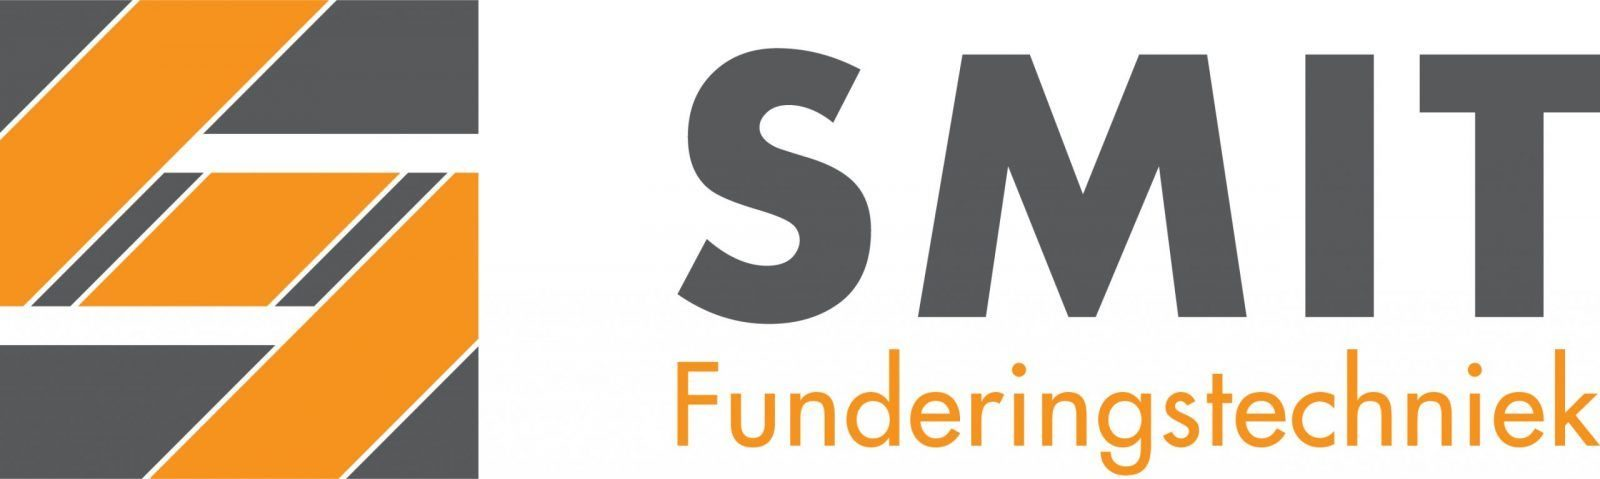 Logo-Smit-Funderingstechniek-bv-scaled